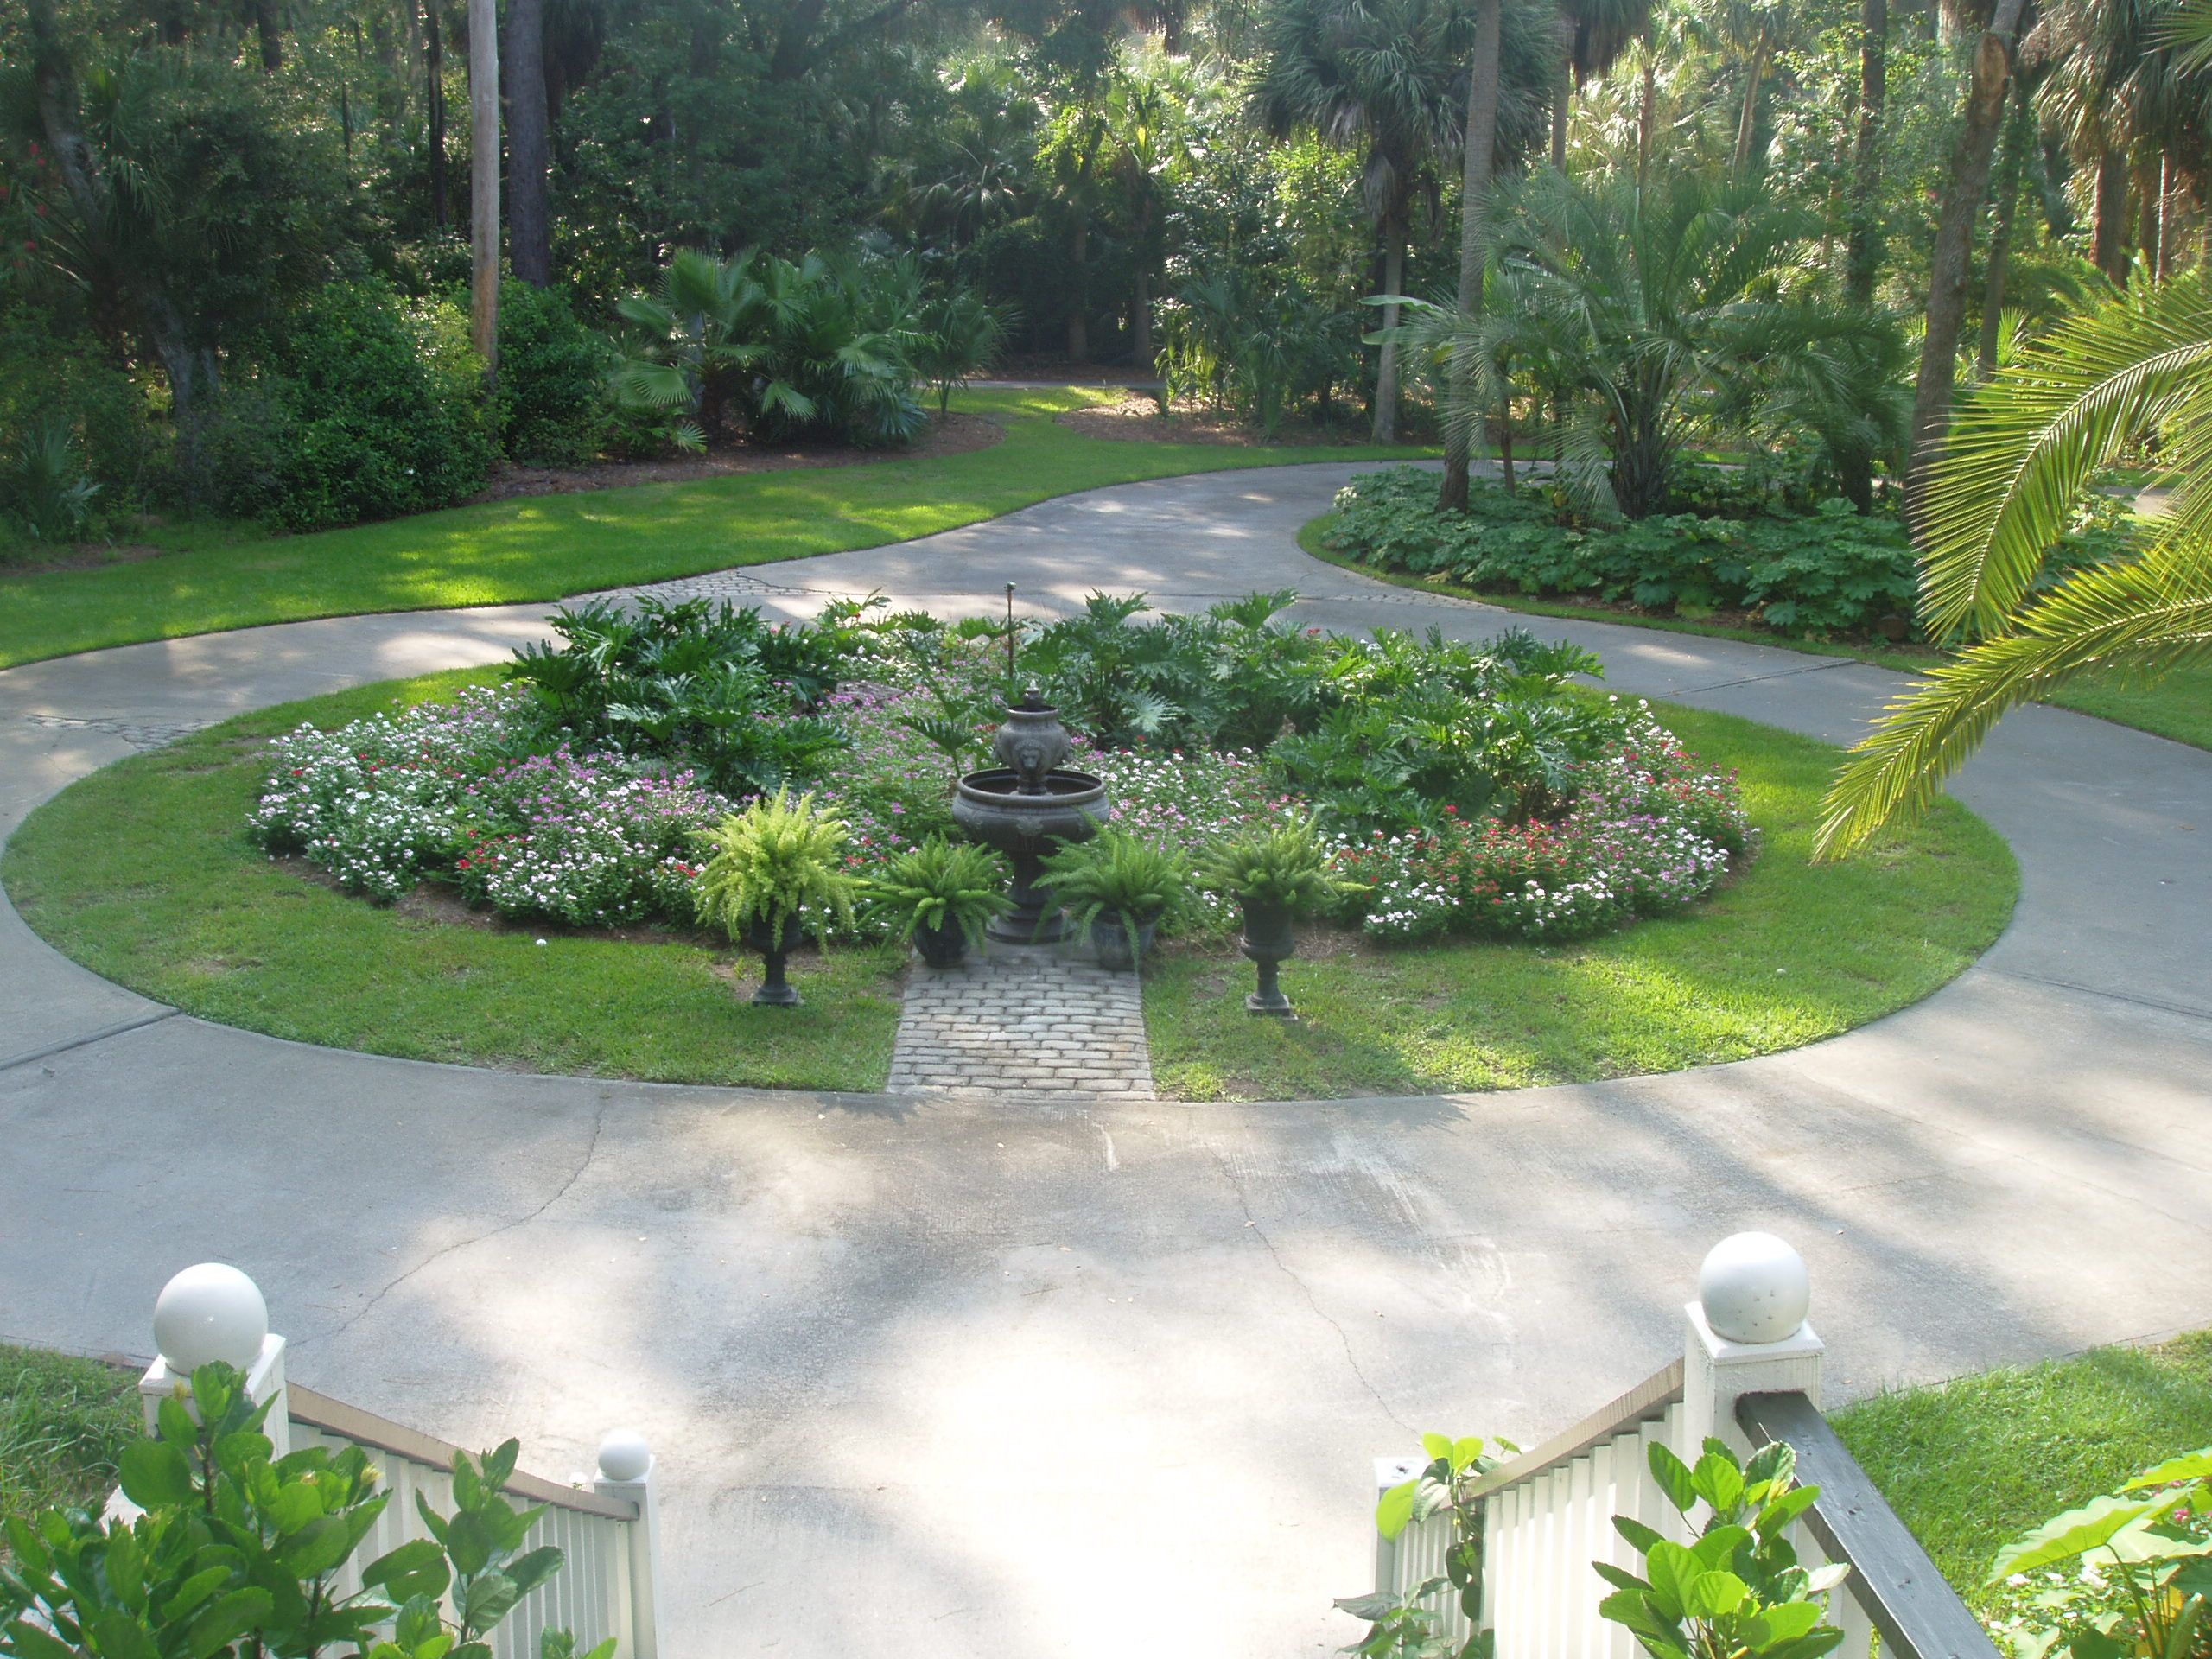 quirky landscaping driveway idea using green garden and big tree